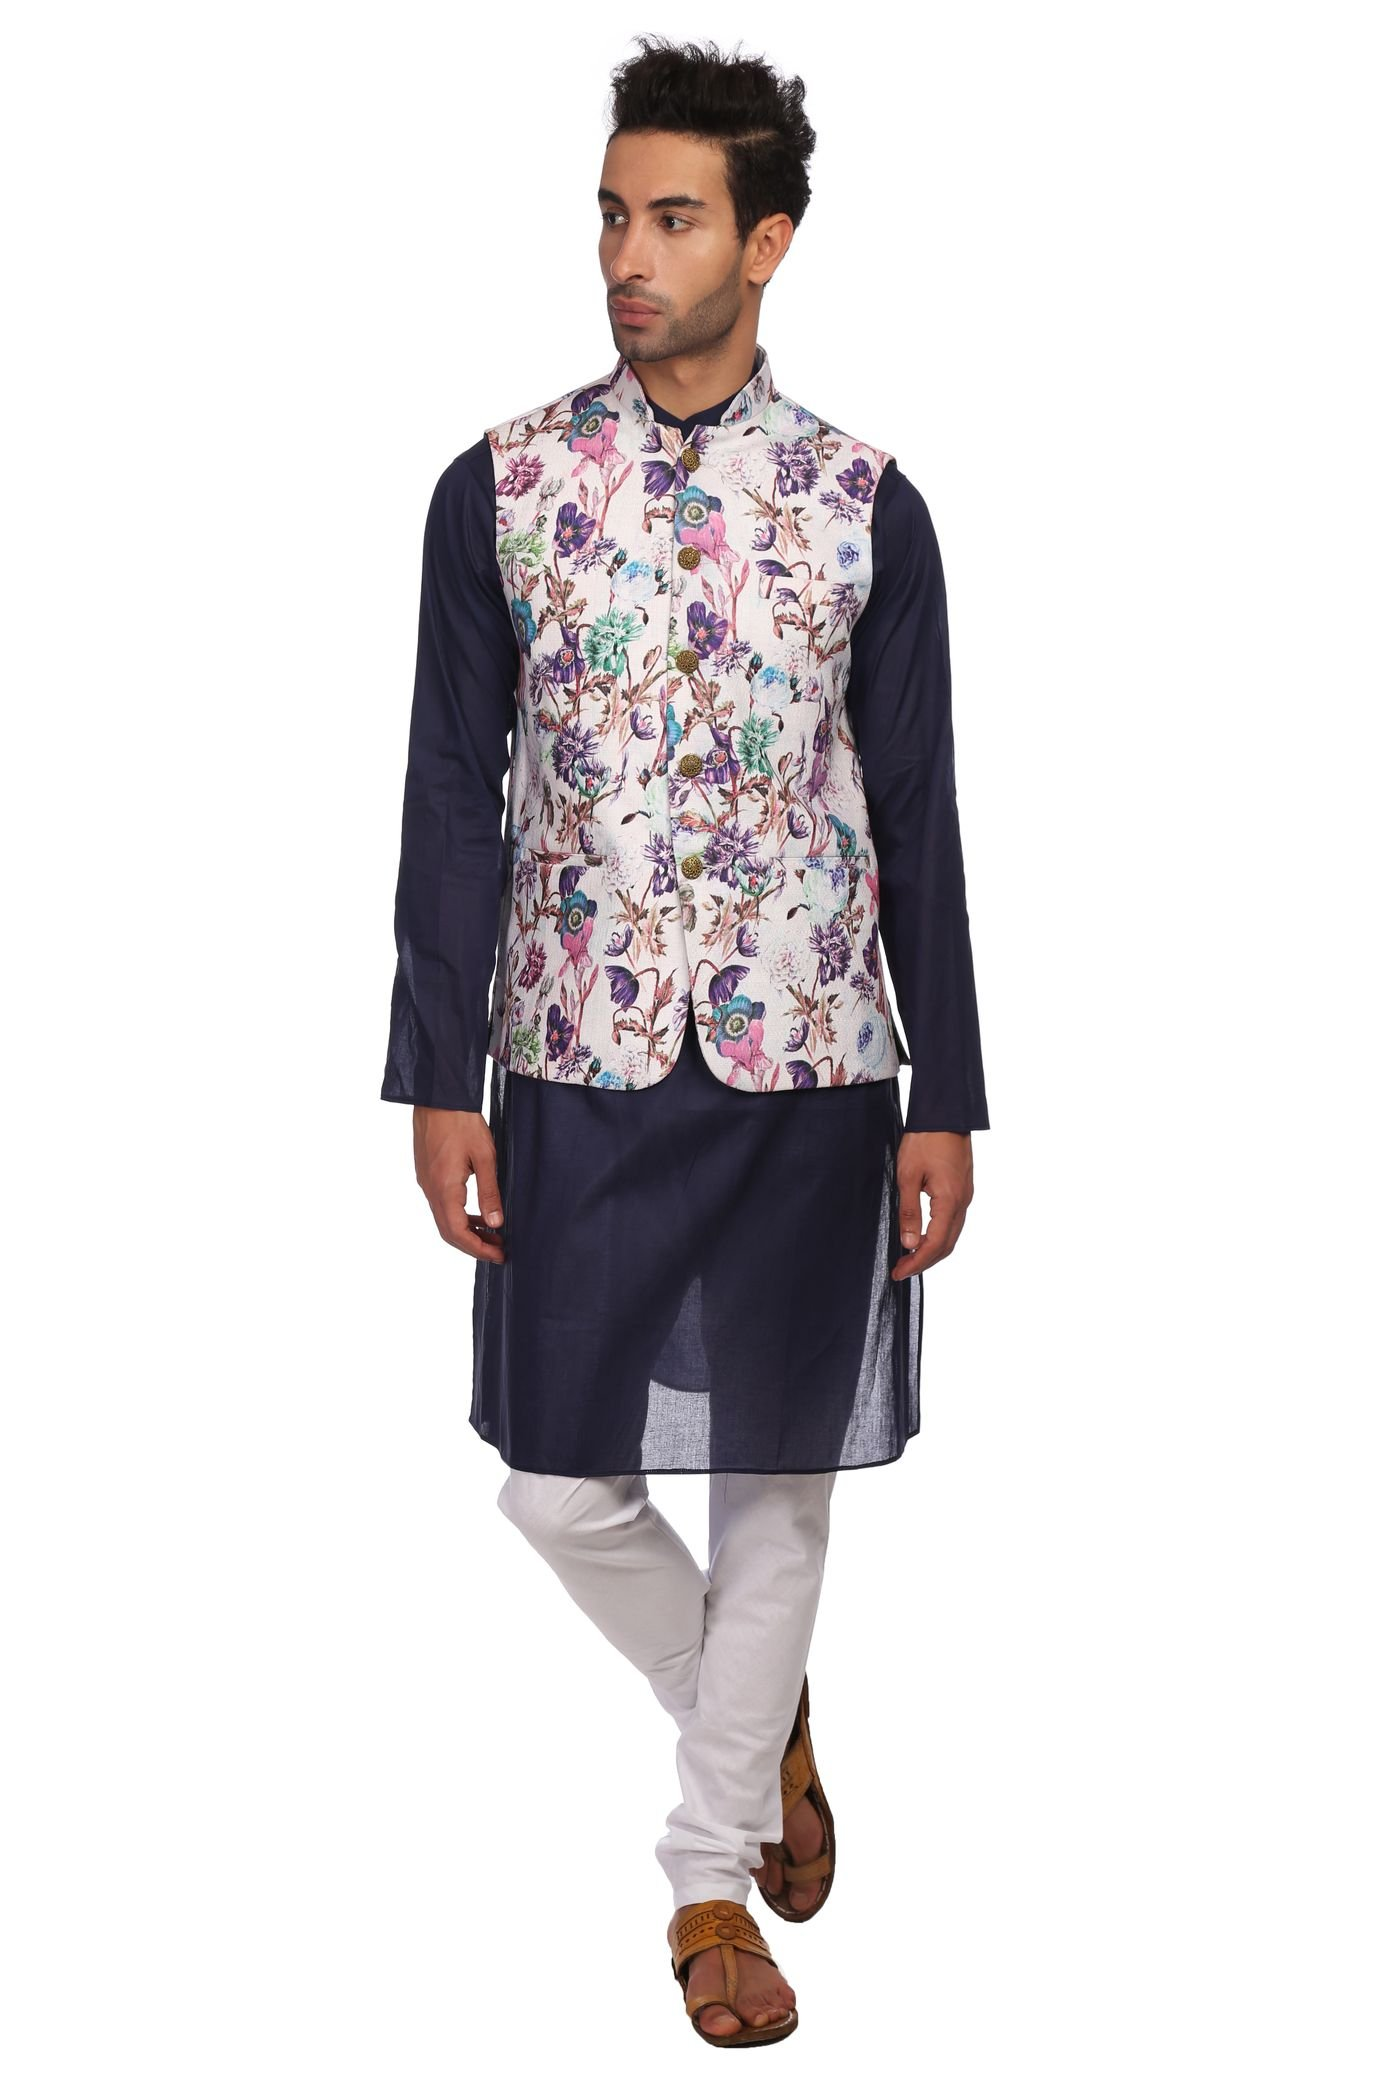 WINTAGE Men's Imported Rayon Printed Nehru Jacket Waistcoat and 100% Cotton Blue Kurta Pajama Indian Ethnic Set : Small